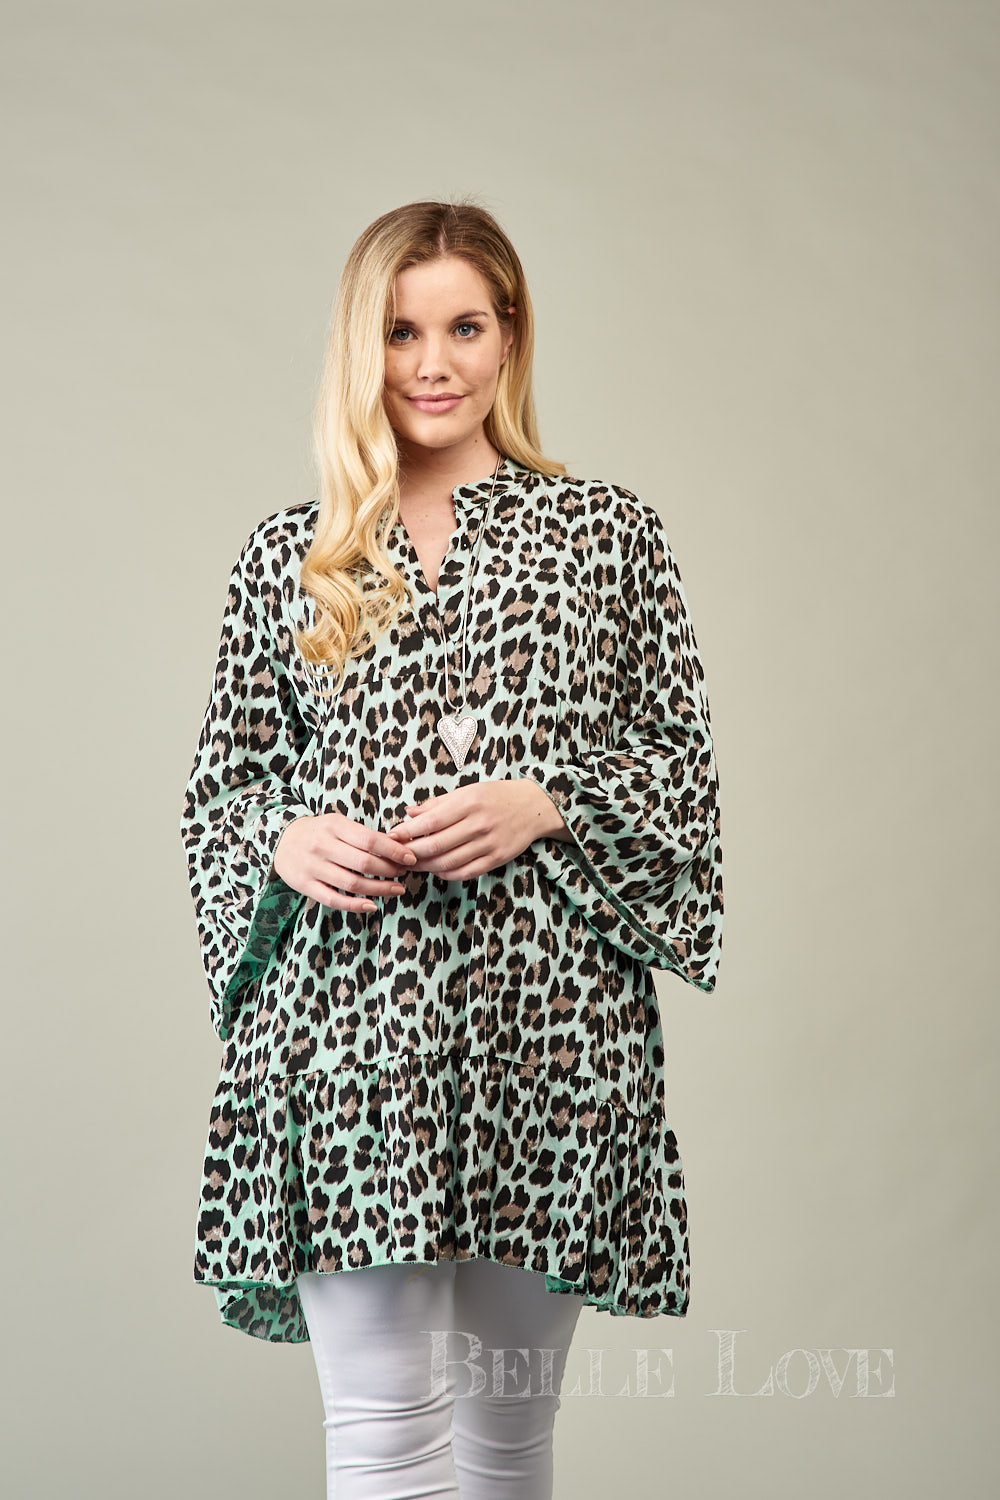 Belle Love Italy Vibrant Leopard Print Smock Dress/Top